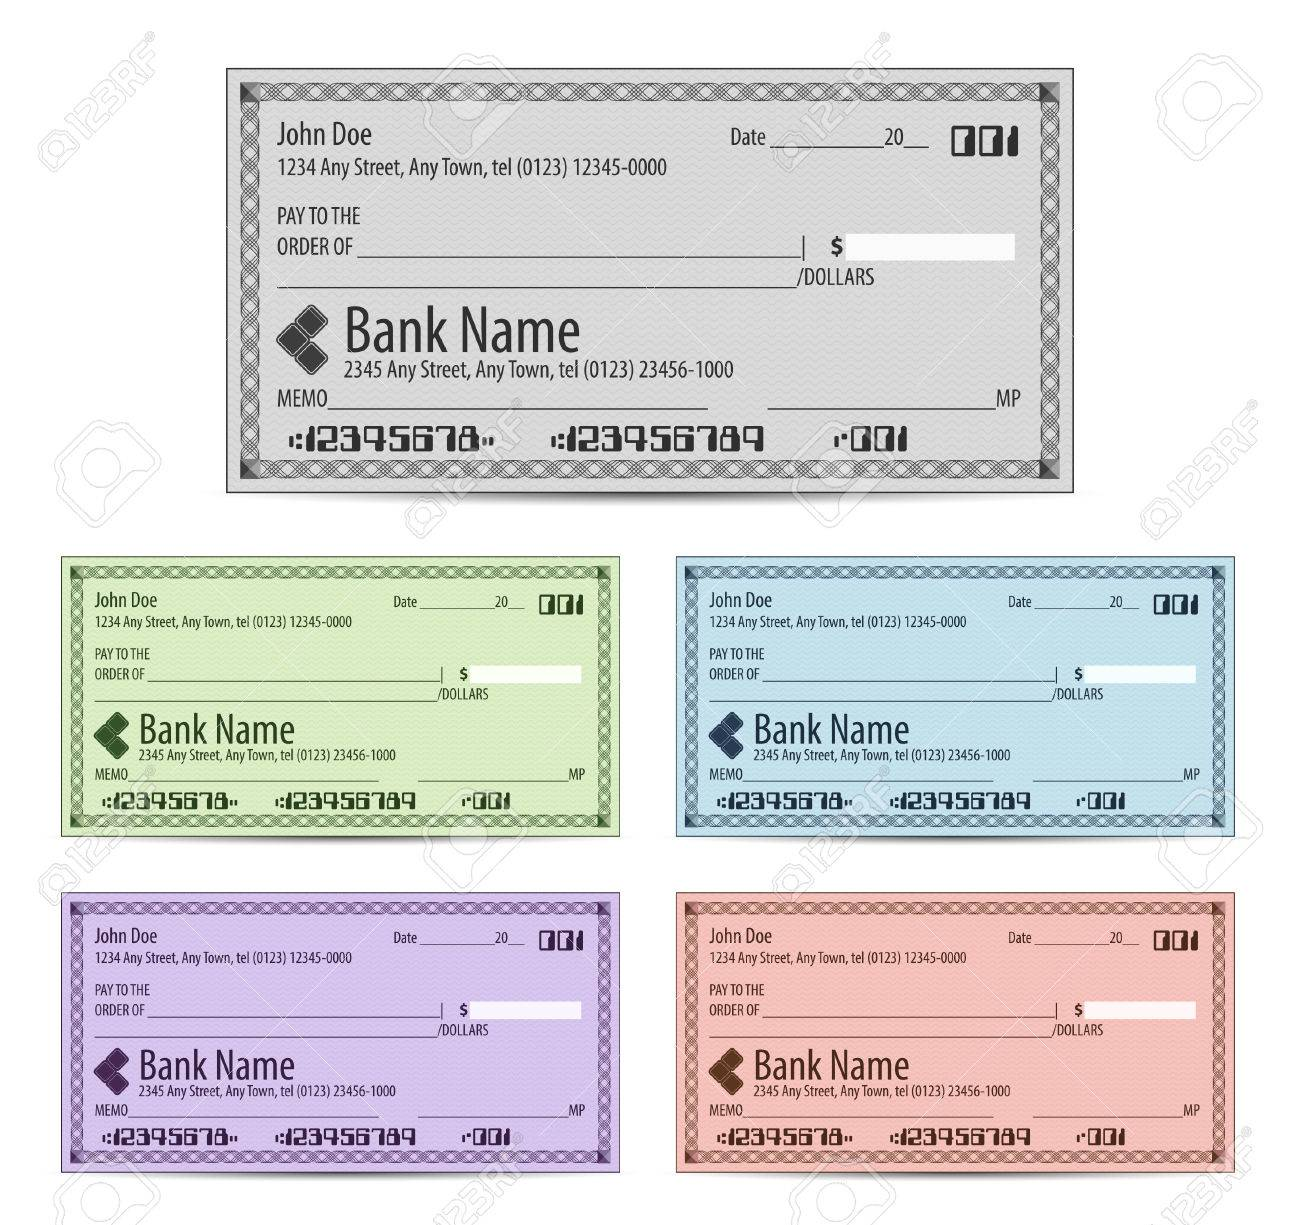 Cheque Stock Photos. Royalty Free Cheque Images